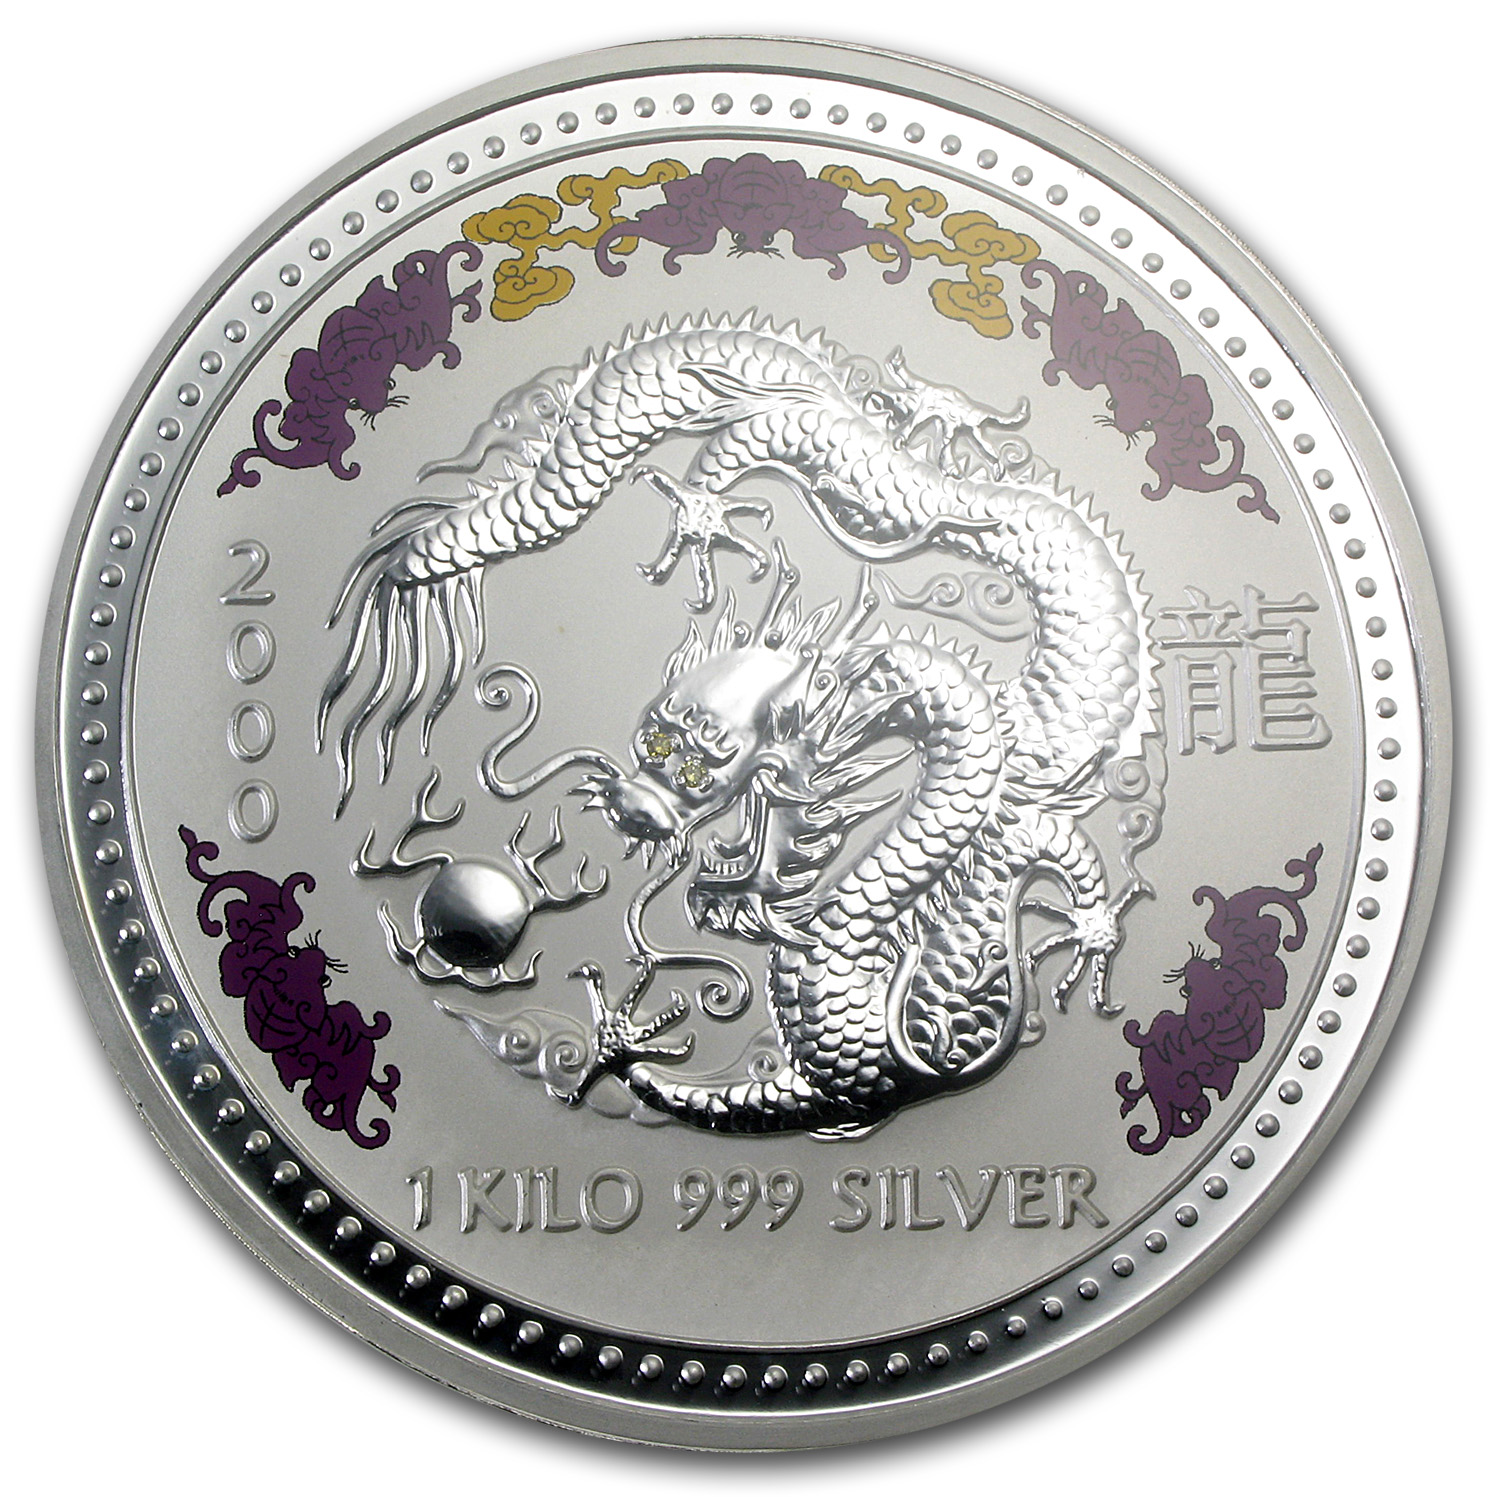 2000 1 kilo Silver Year of the Dragon (Diamond Eye) MS-69 NGC